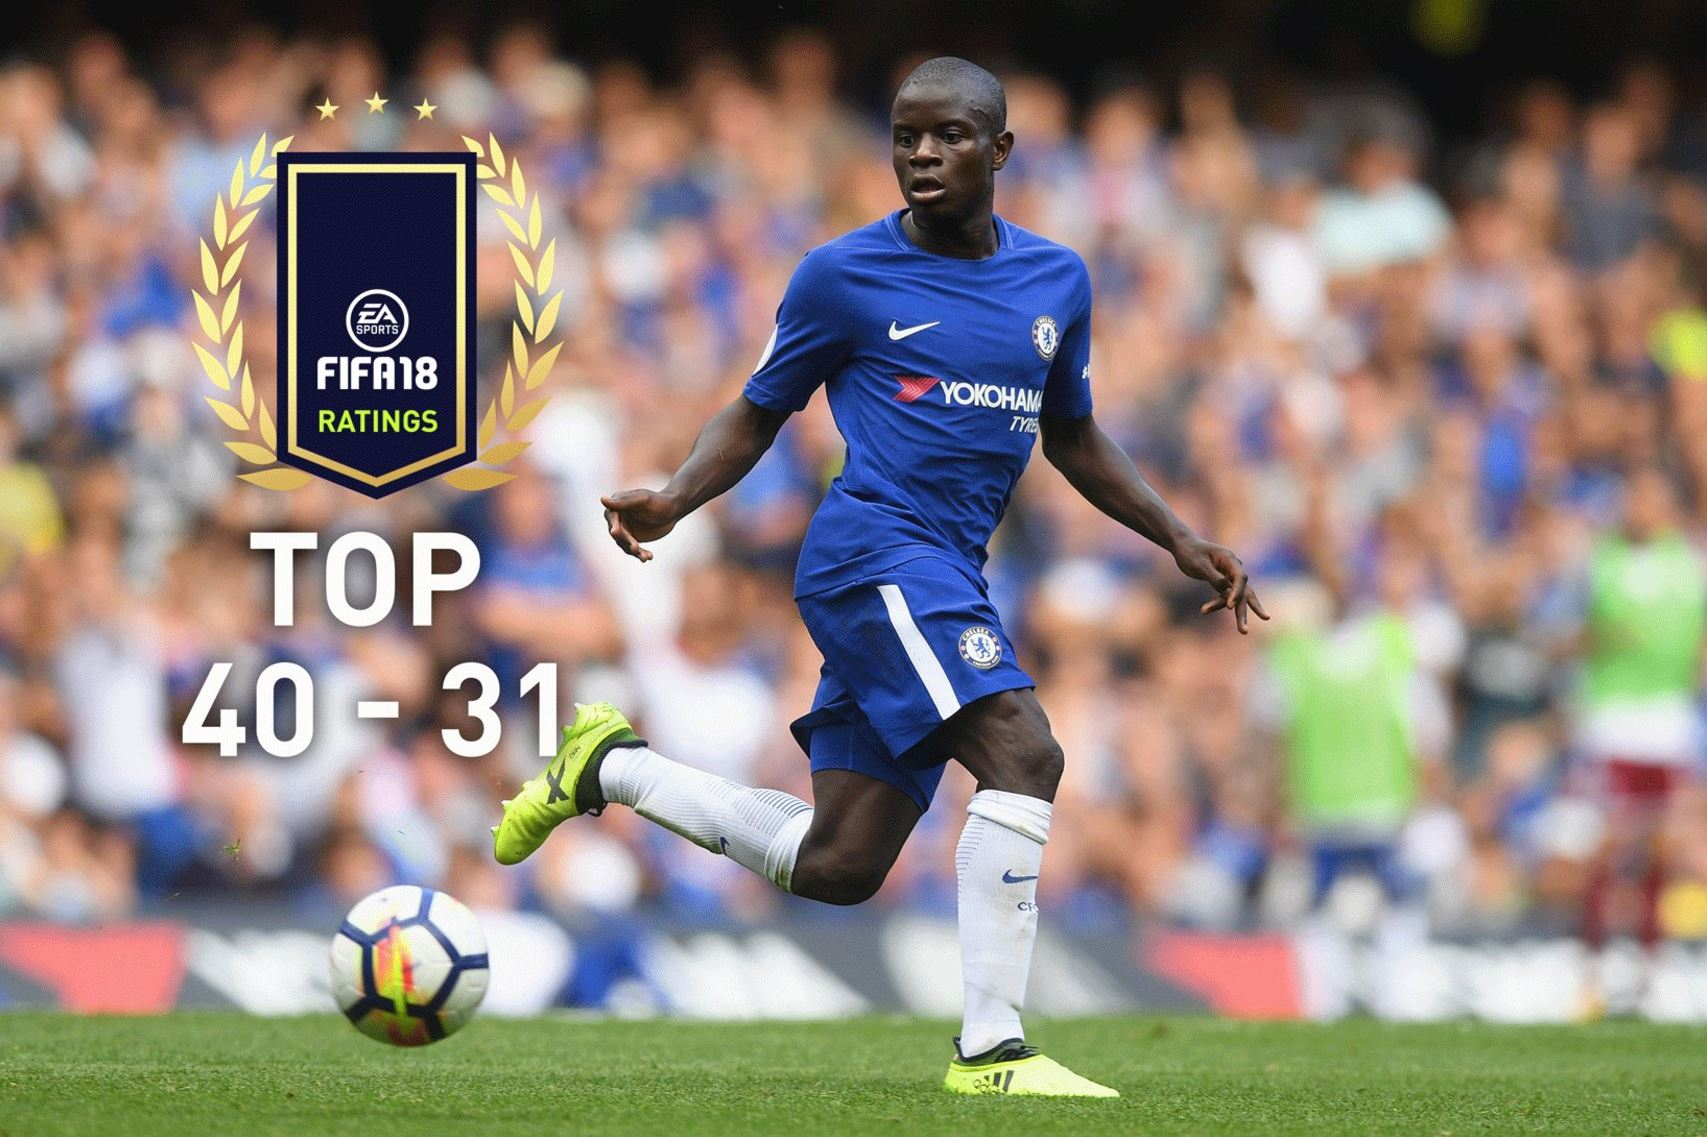 N Golo Kante earns sizable overall rating increase in latest FIFA